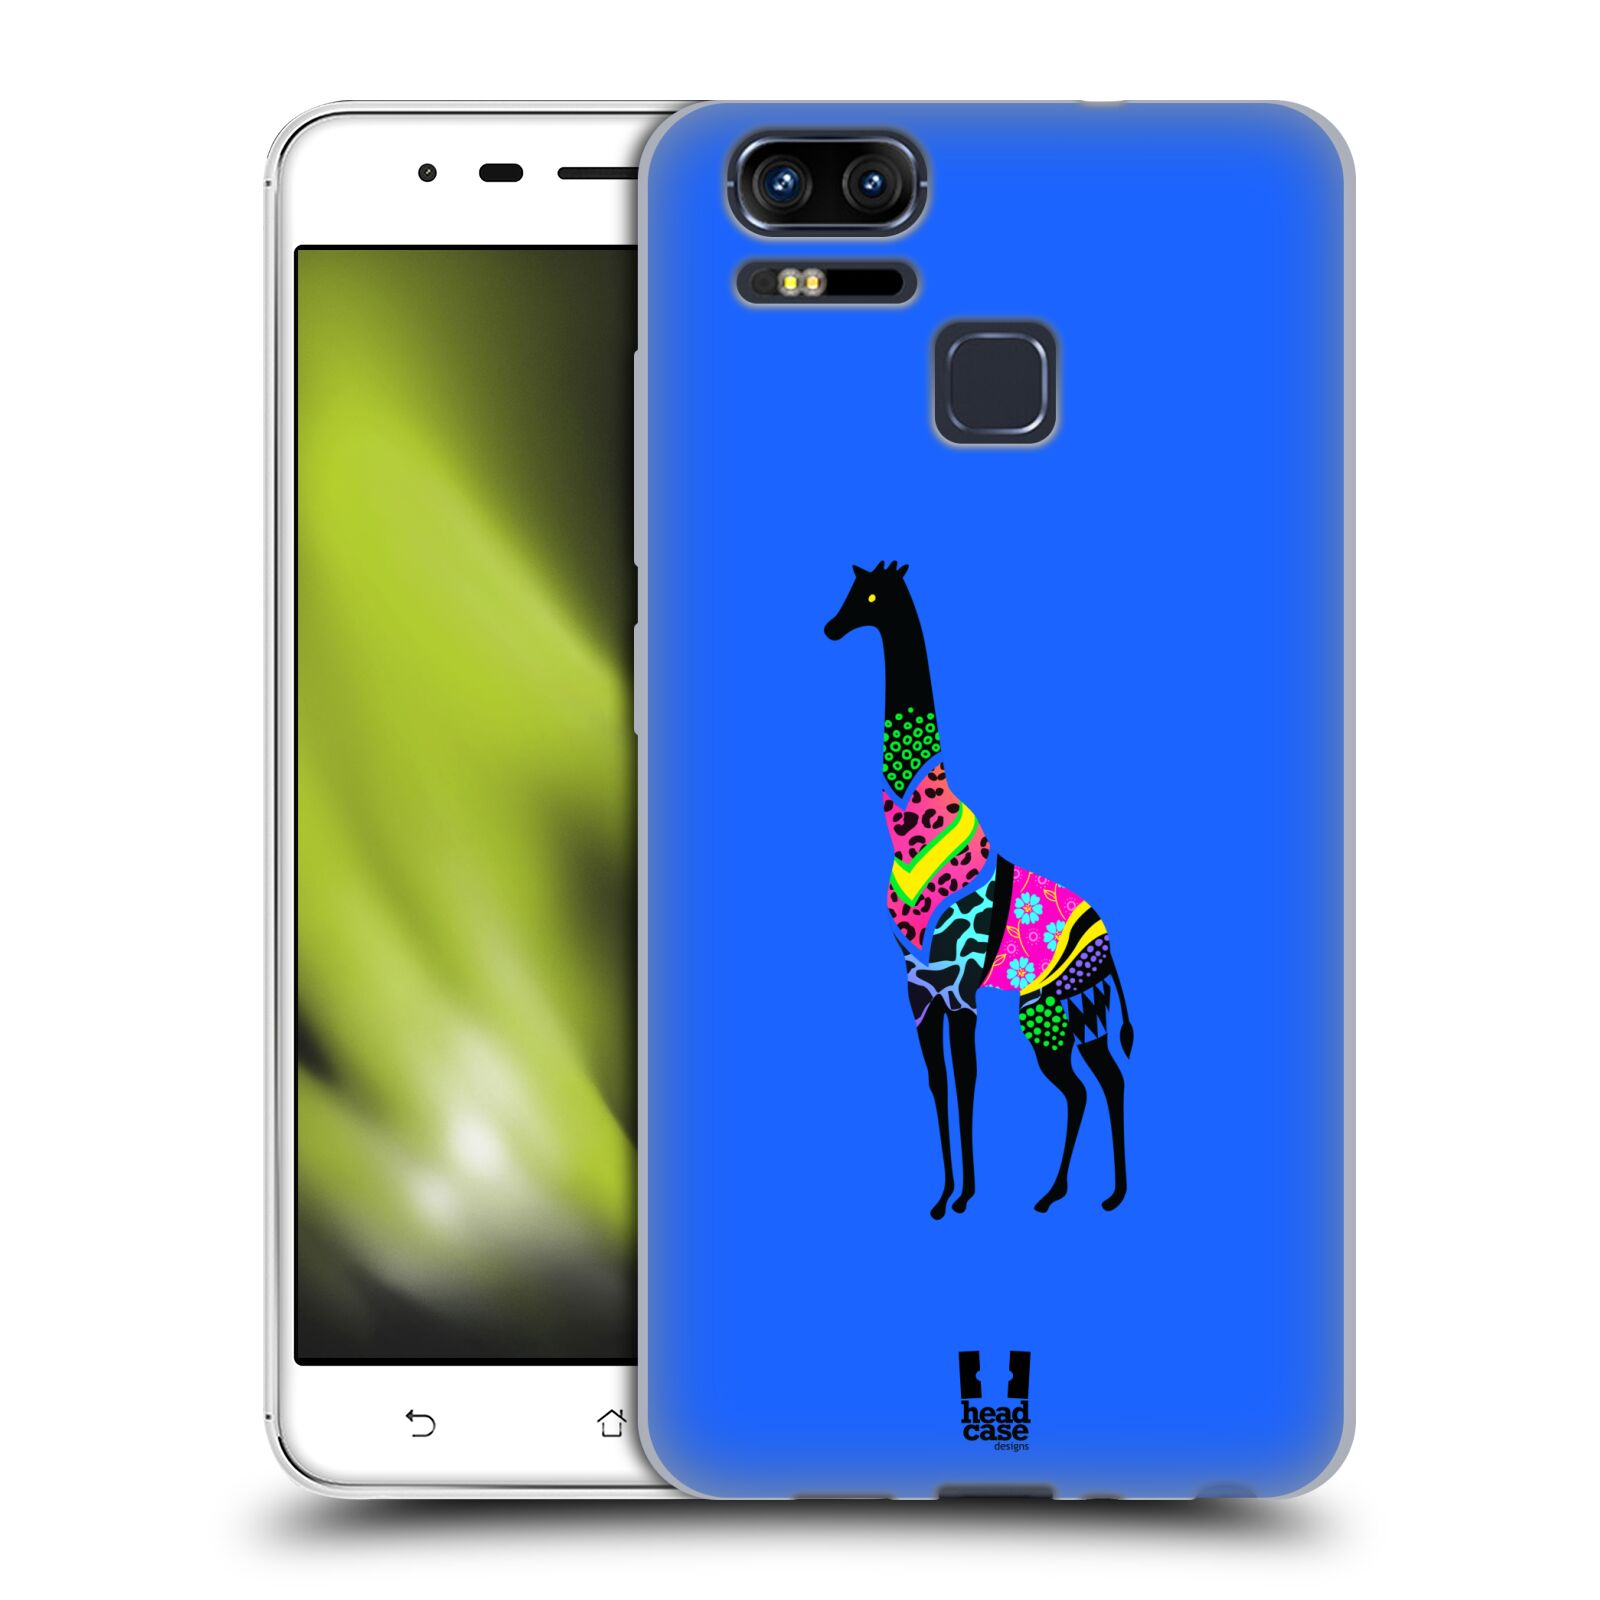 HEAD-CASE-DESIGNS-NEON-SILHOUETTE-SOFT-GEL-CASE-FOR-ASUS-ZENFONE-3-ZOOM-ZE553KL